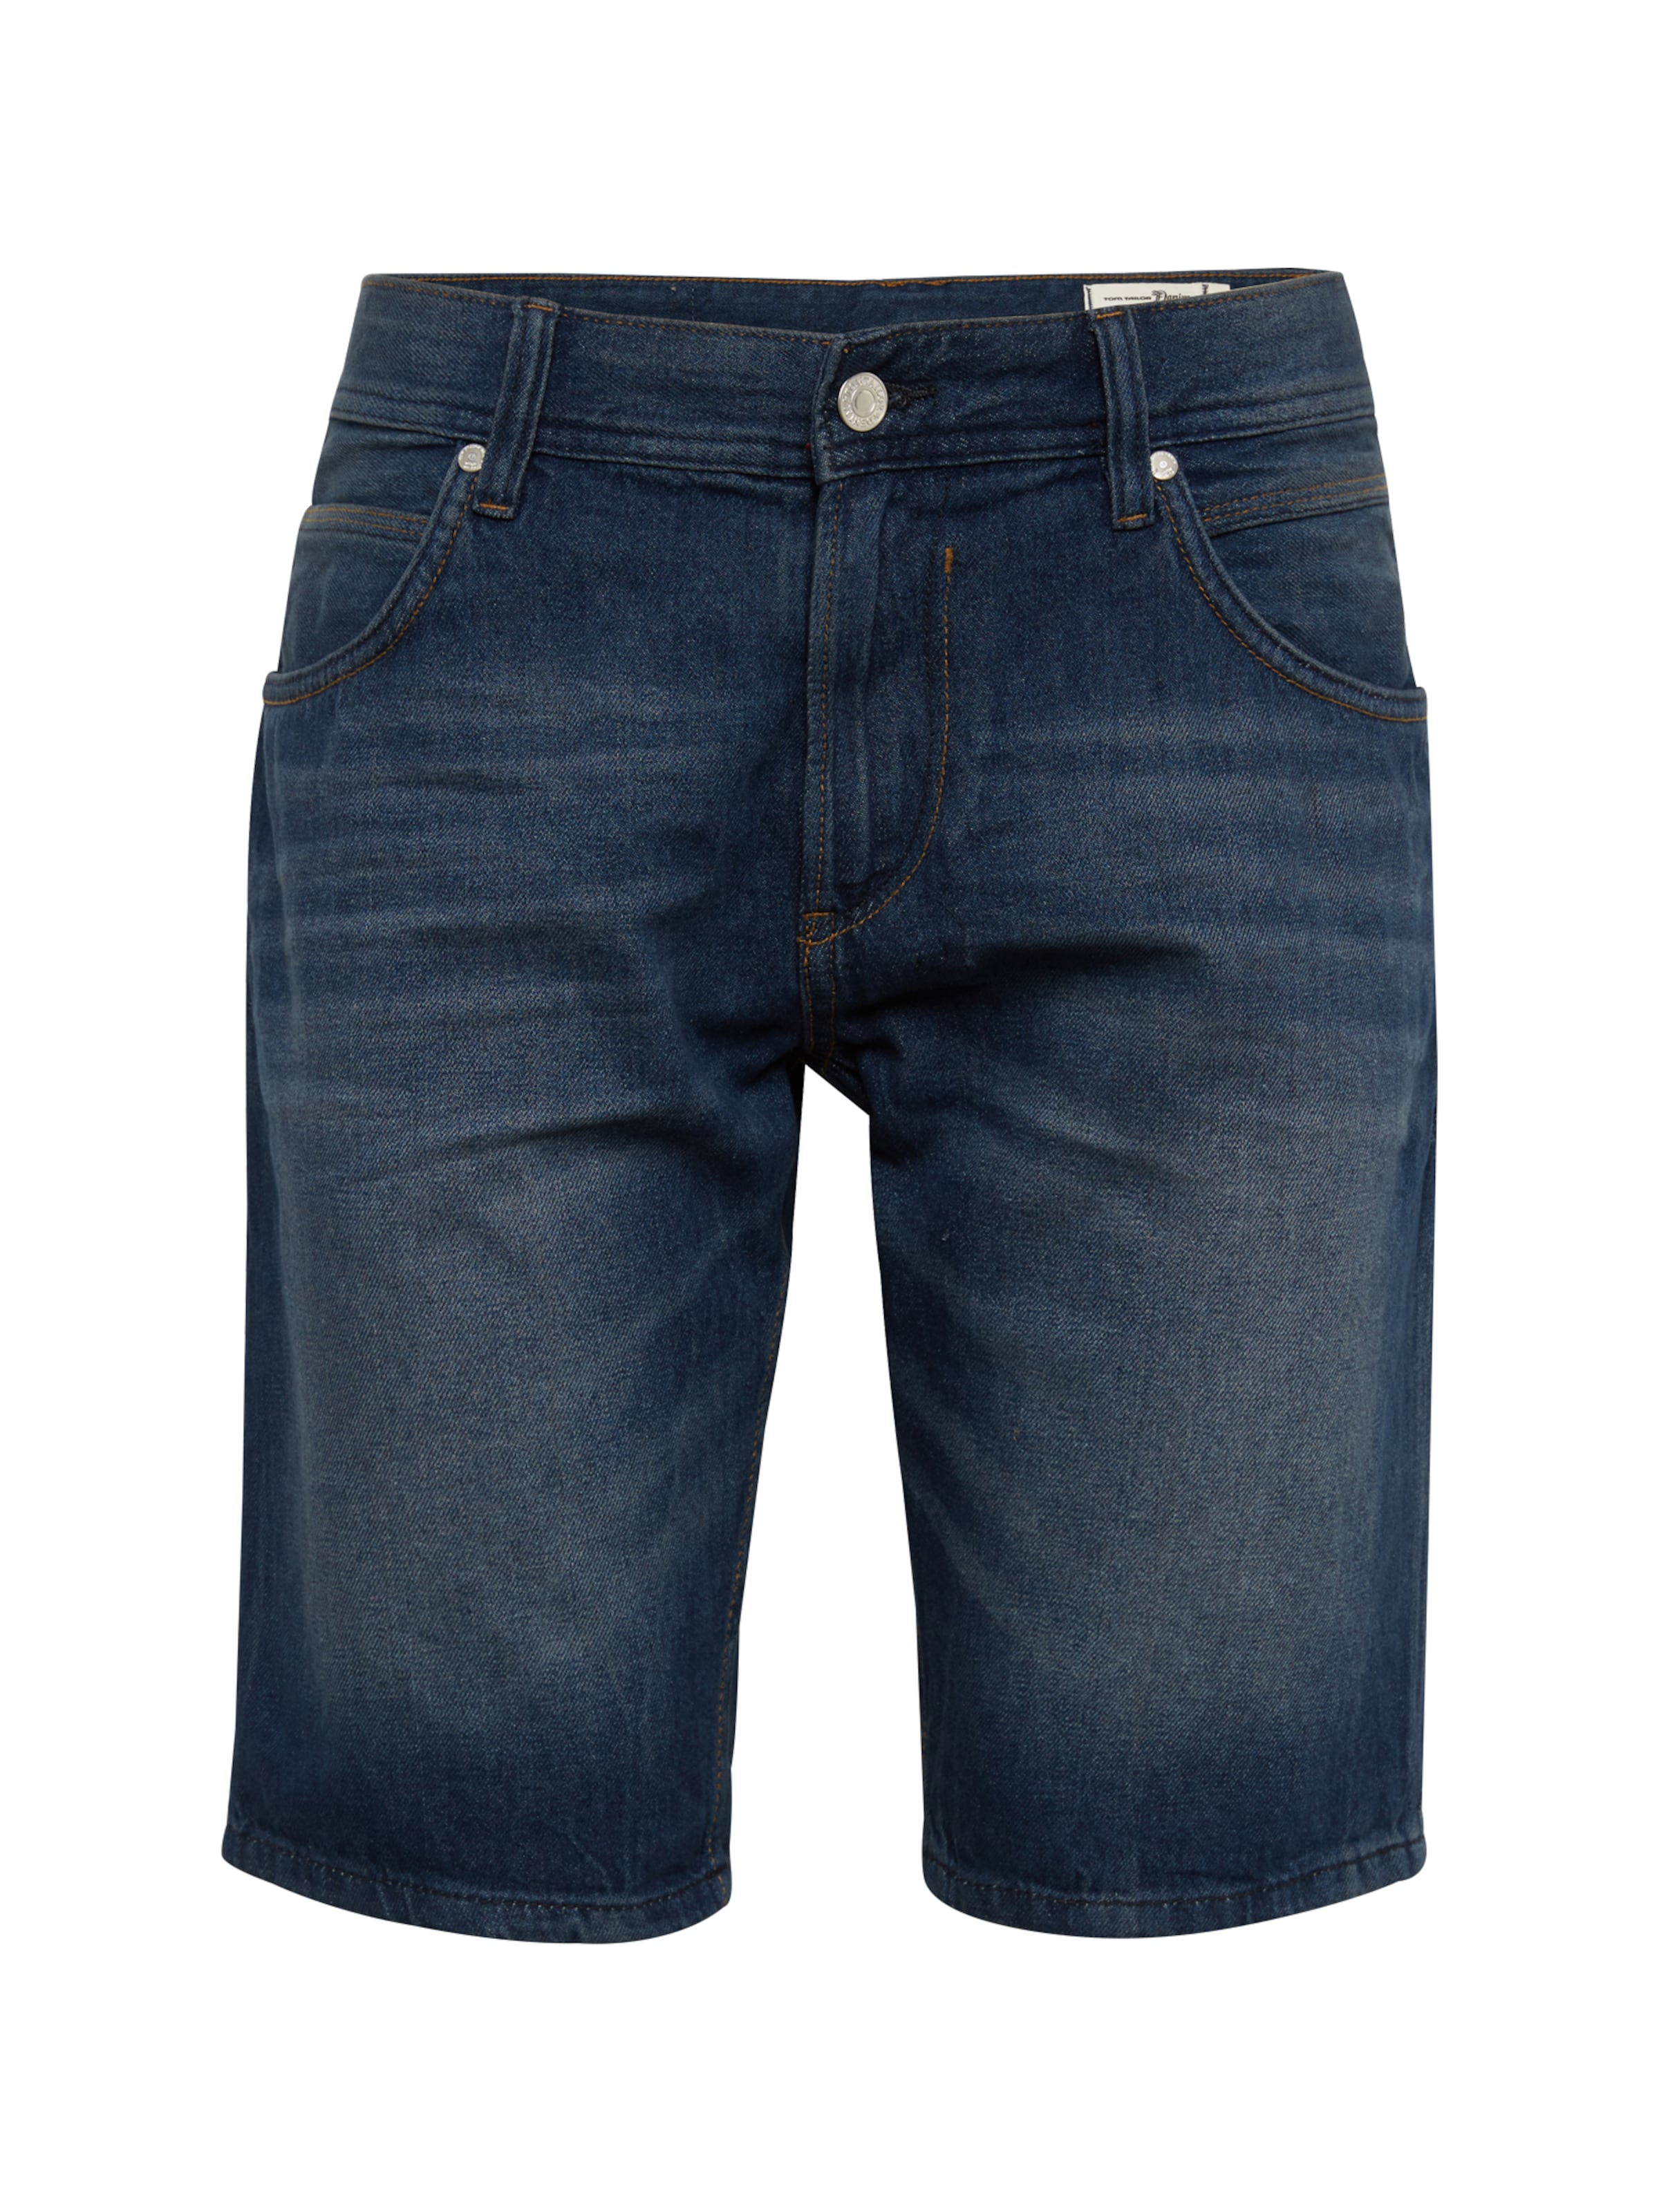 Tailor Jean Bleu Tom En Denim 8wOPXnk0